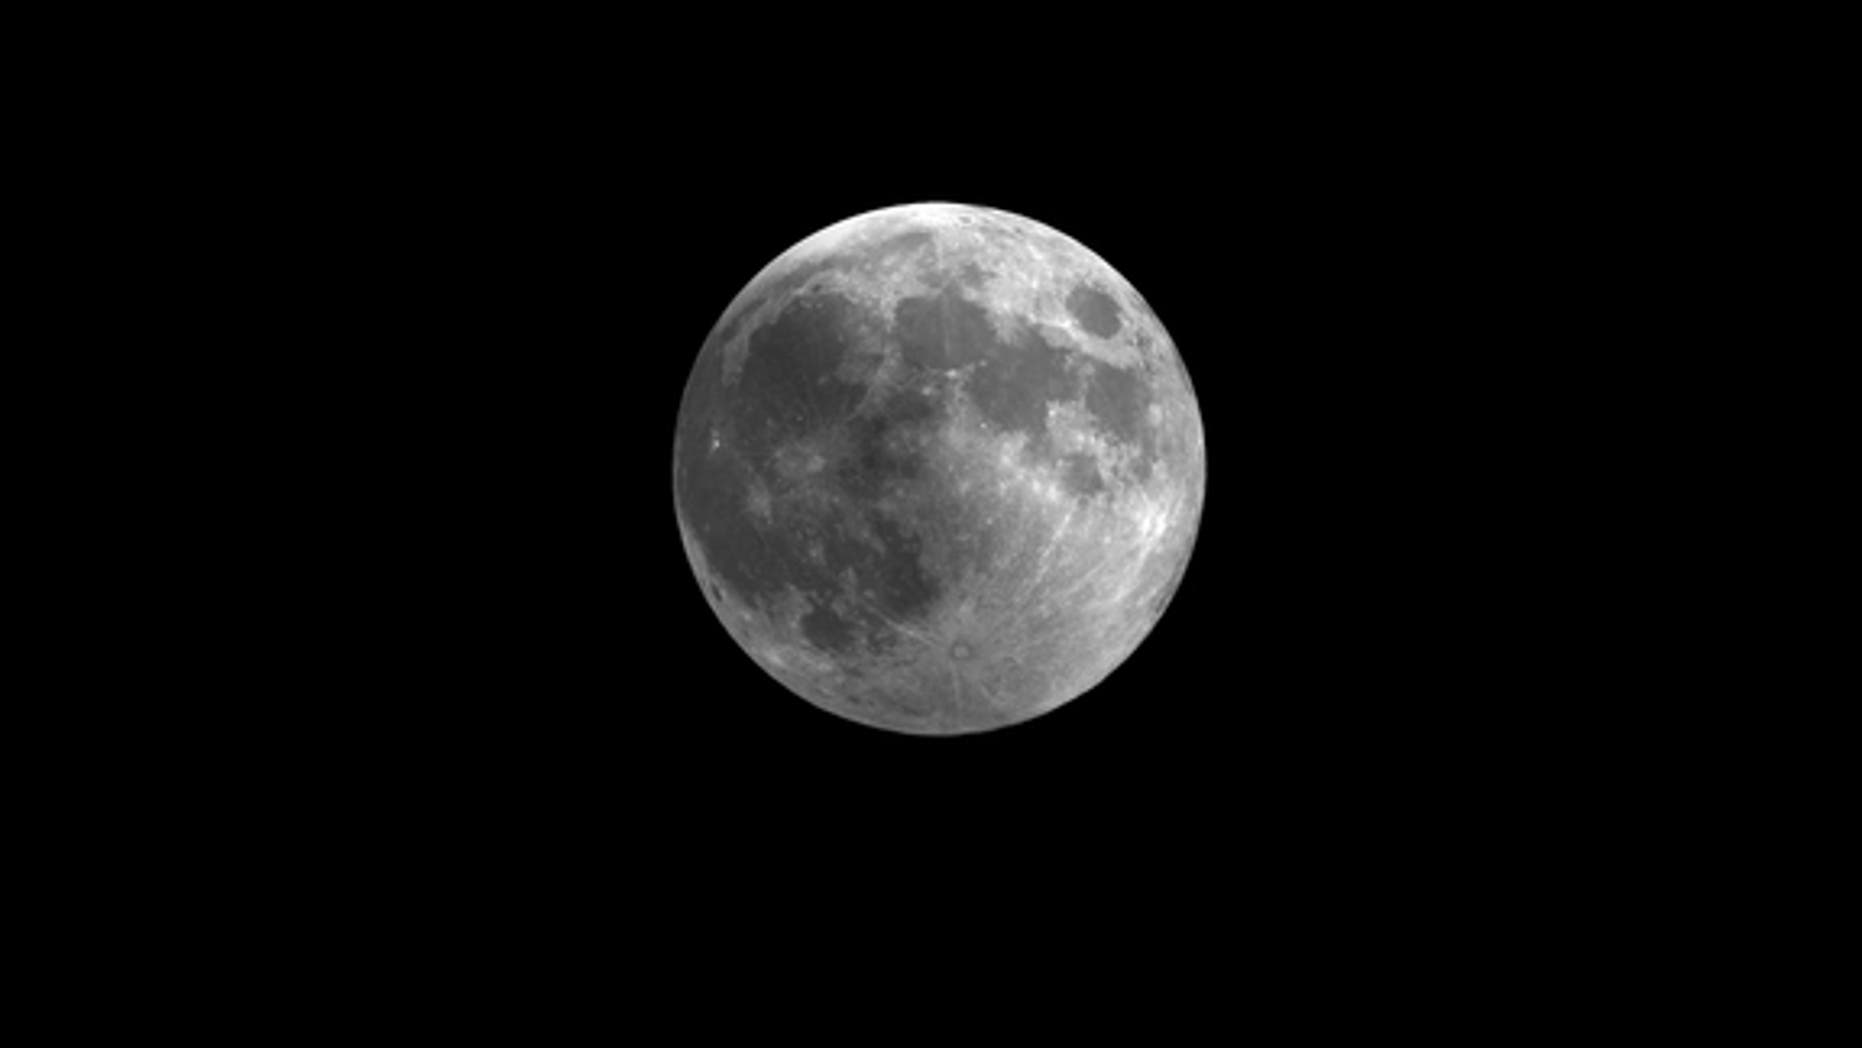 This still from a video skywatching guide shows how the penumbral lunar eclipse of Nov. 28 will slightly darken the full moon. The video guide is a monthly resource by the Space Telescope Science Institute in Maryland.